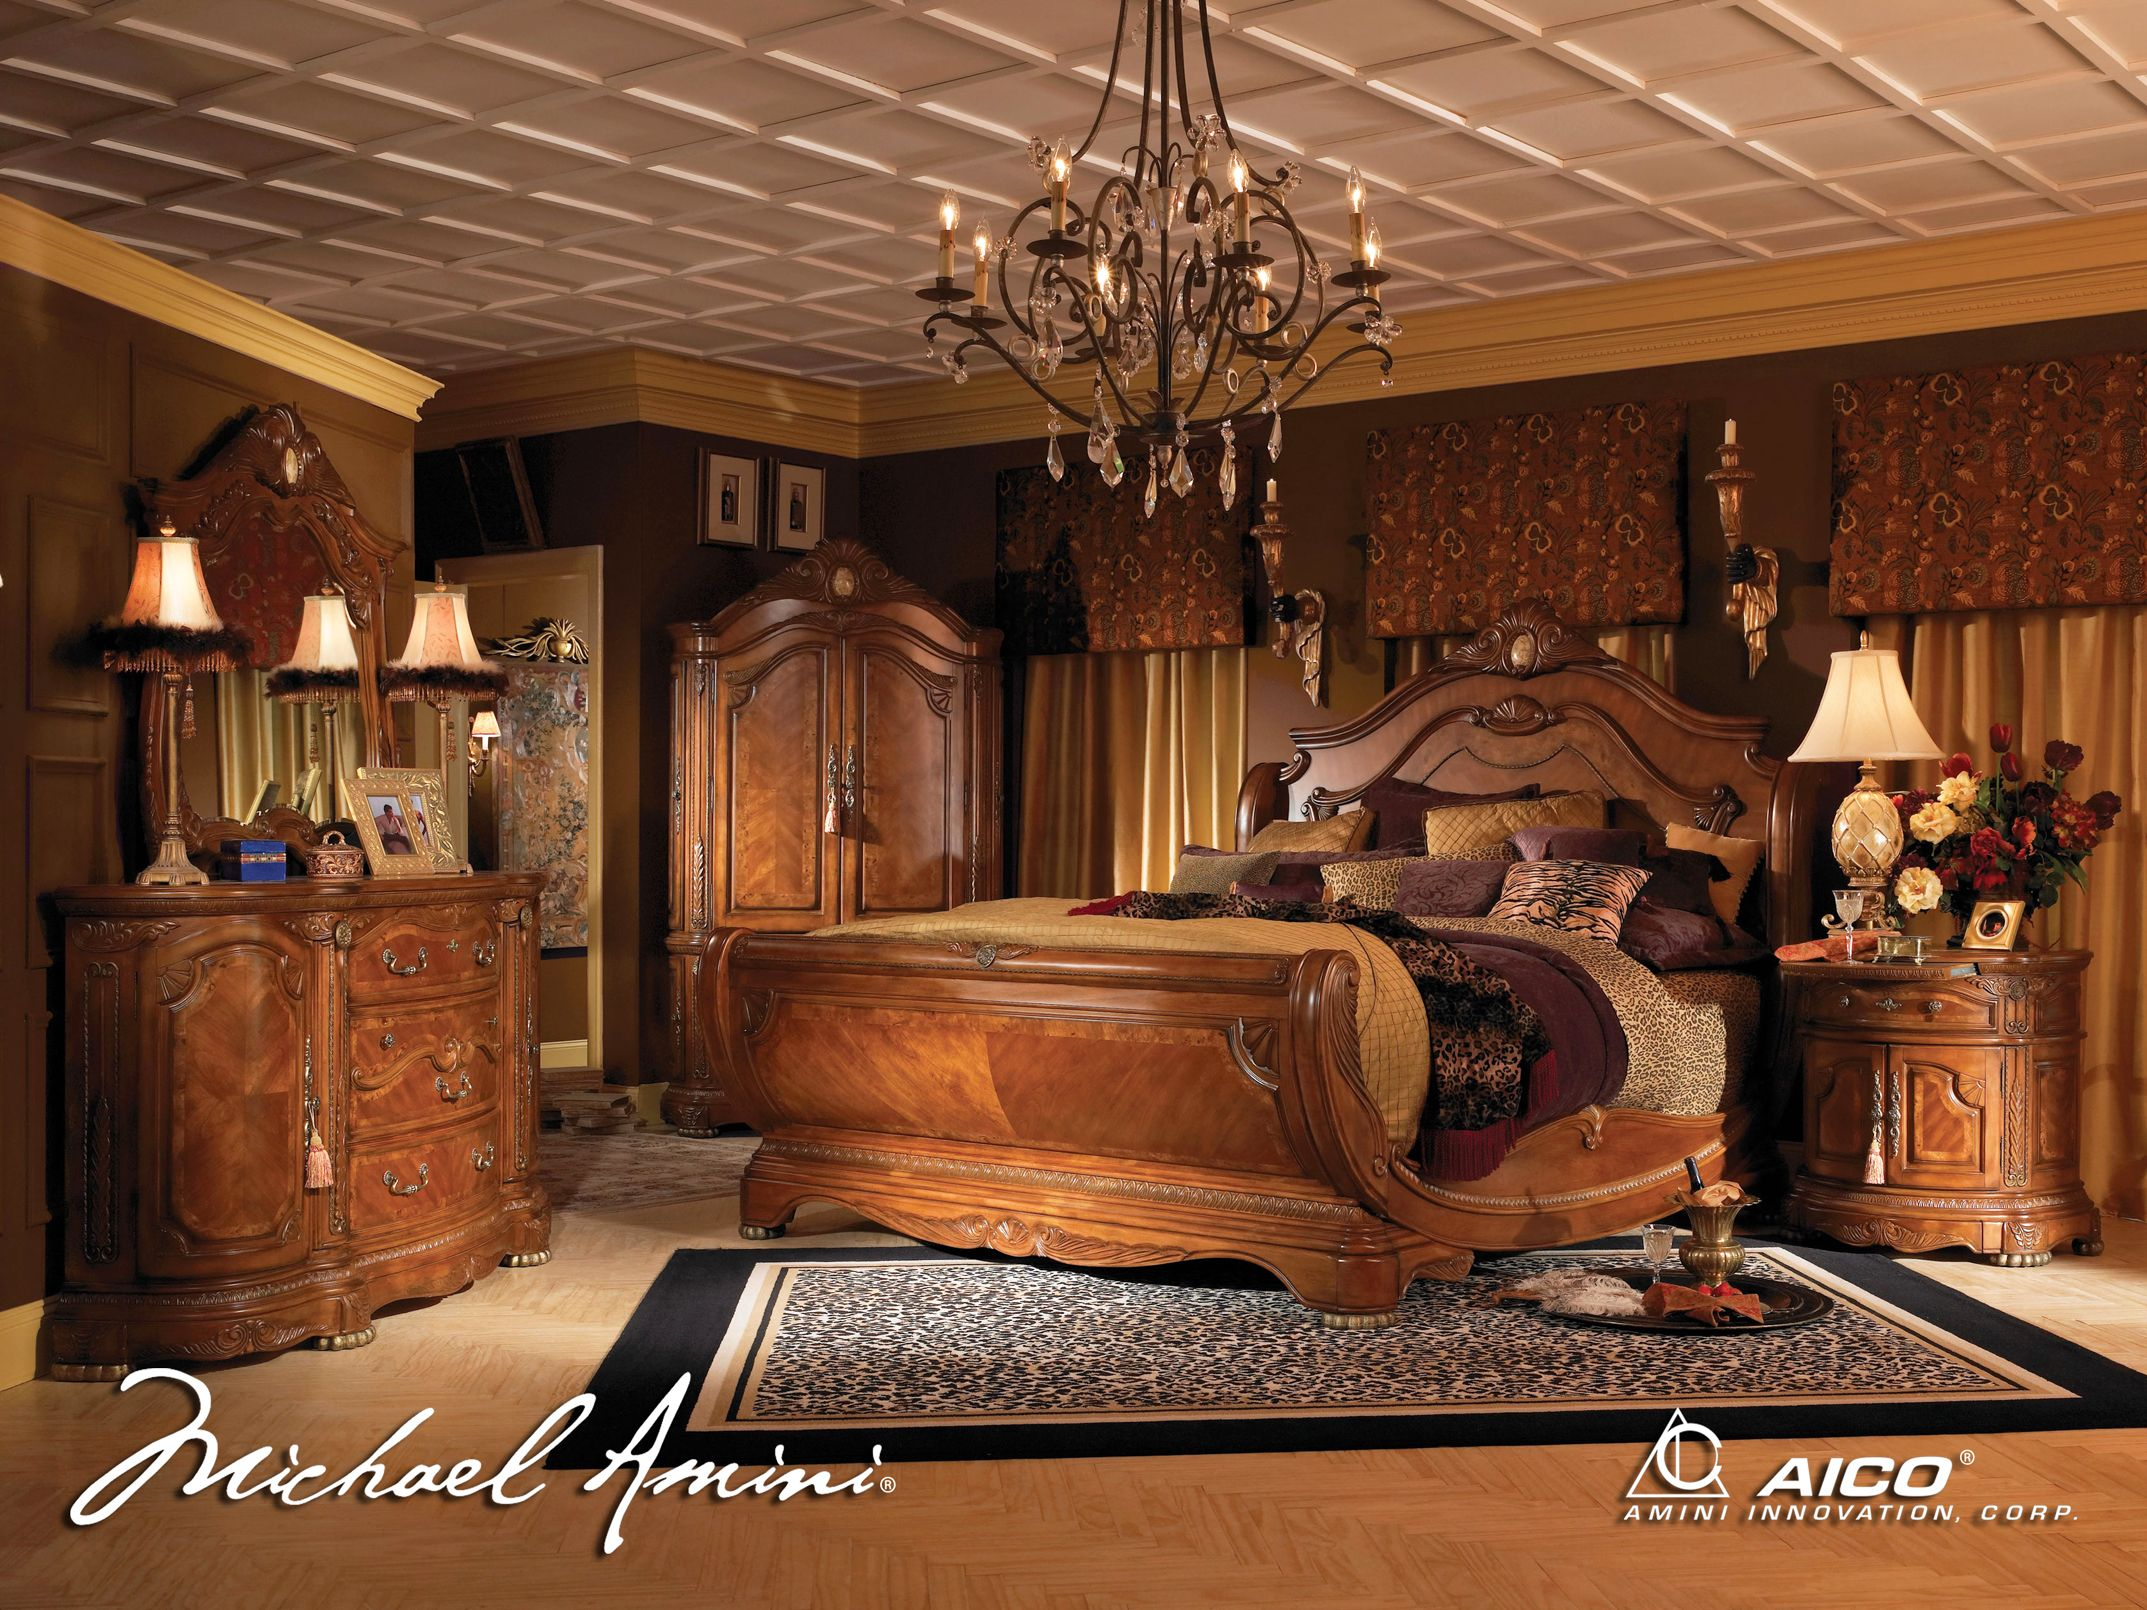 Beautiful California King Size Bed Sets King Bedroom Sets Aico 5pc